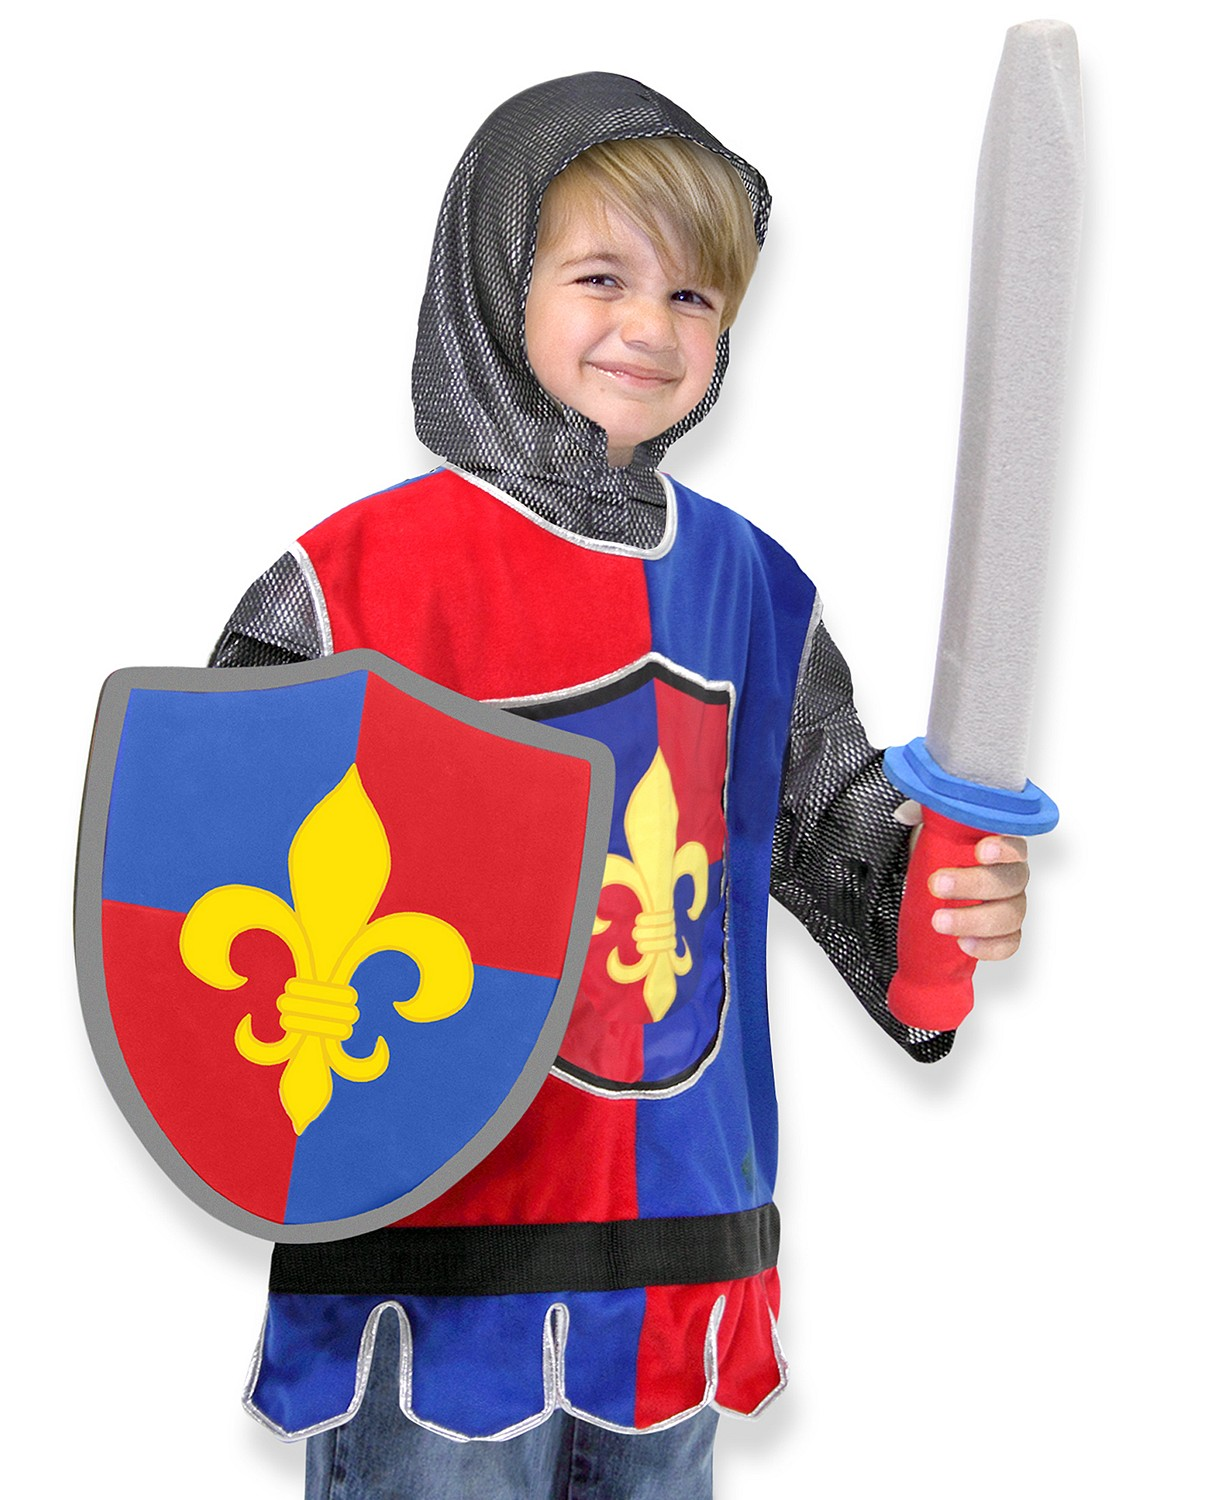 Melissa and Doug Kids Toys, Knight Costume Set